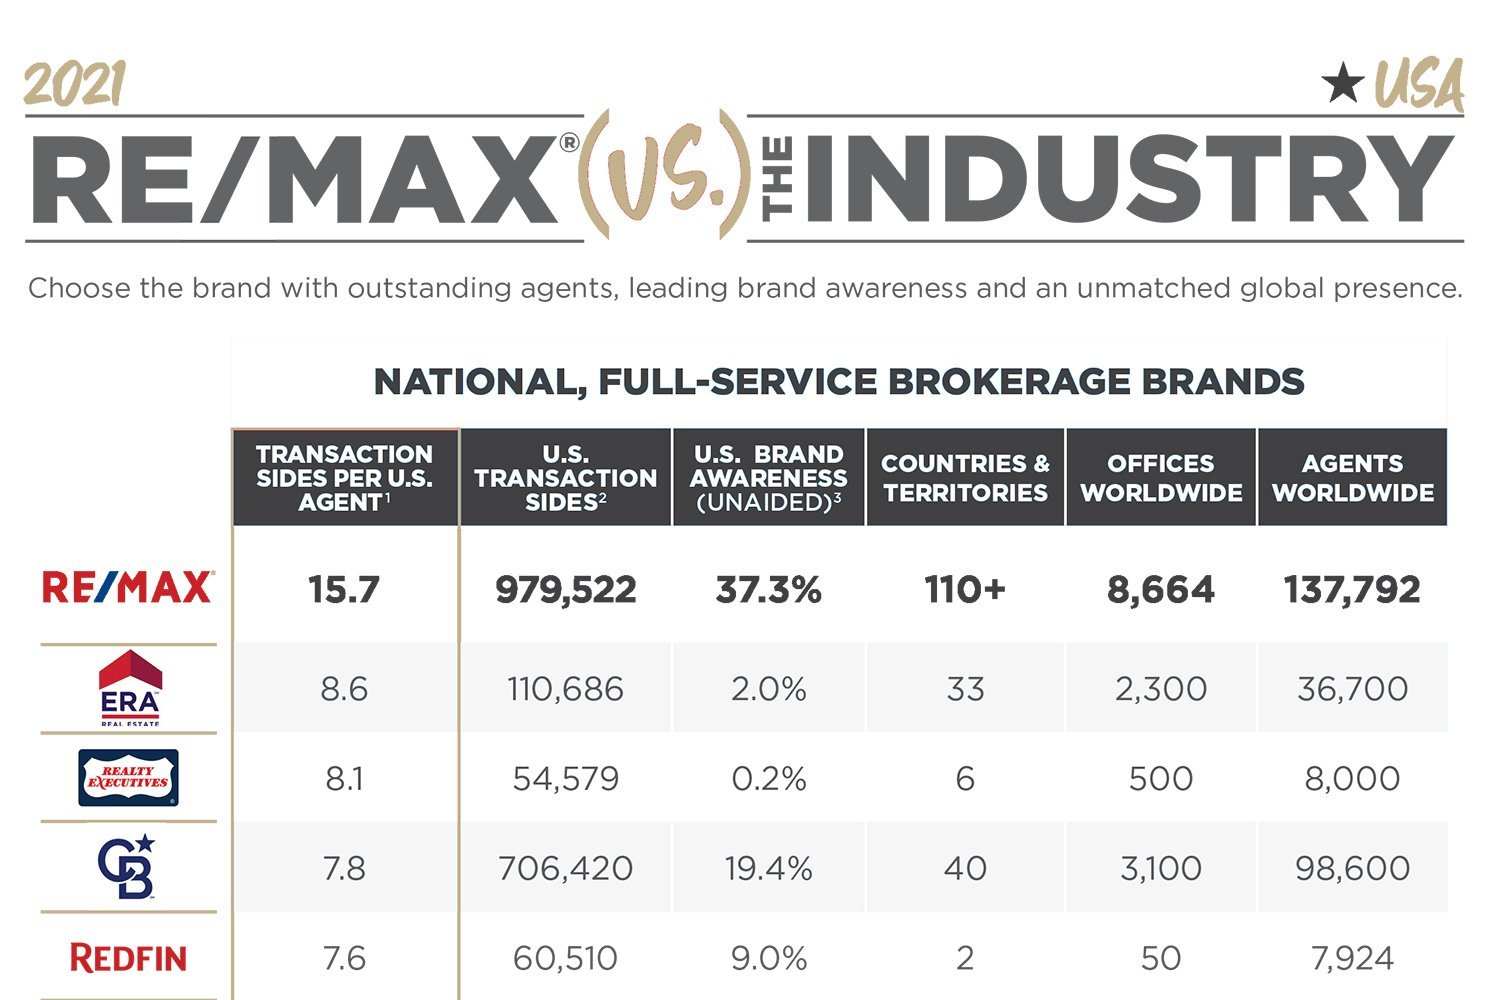 remax vs the industry info